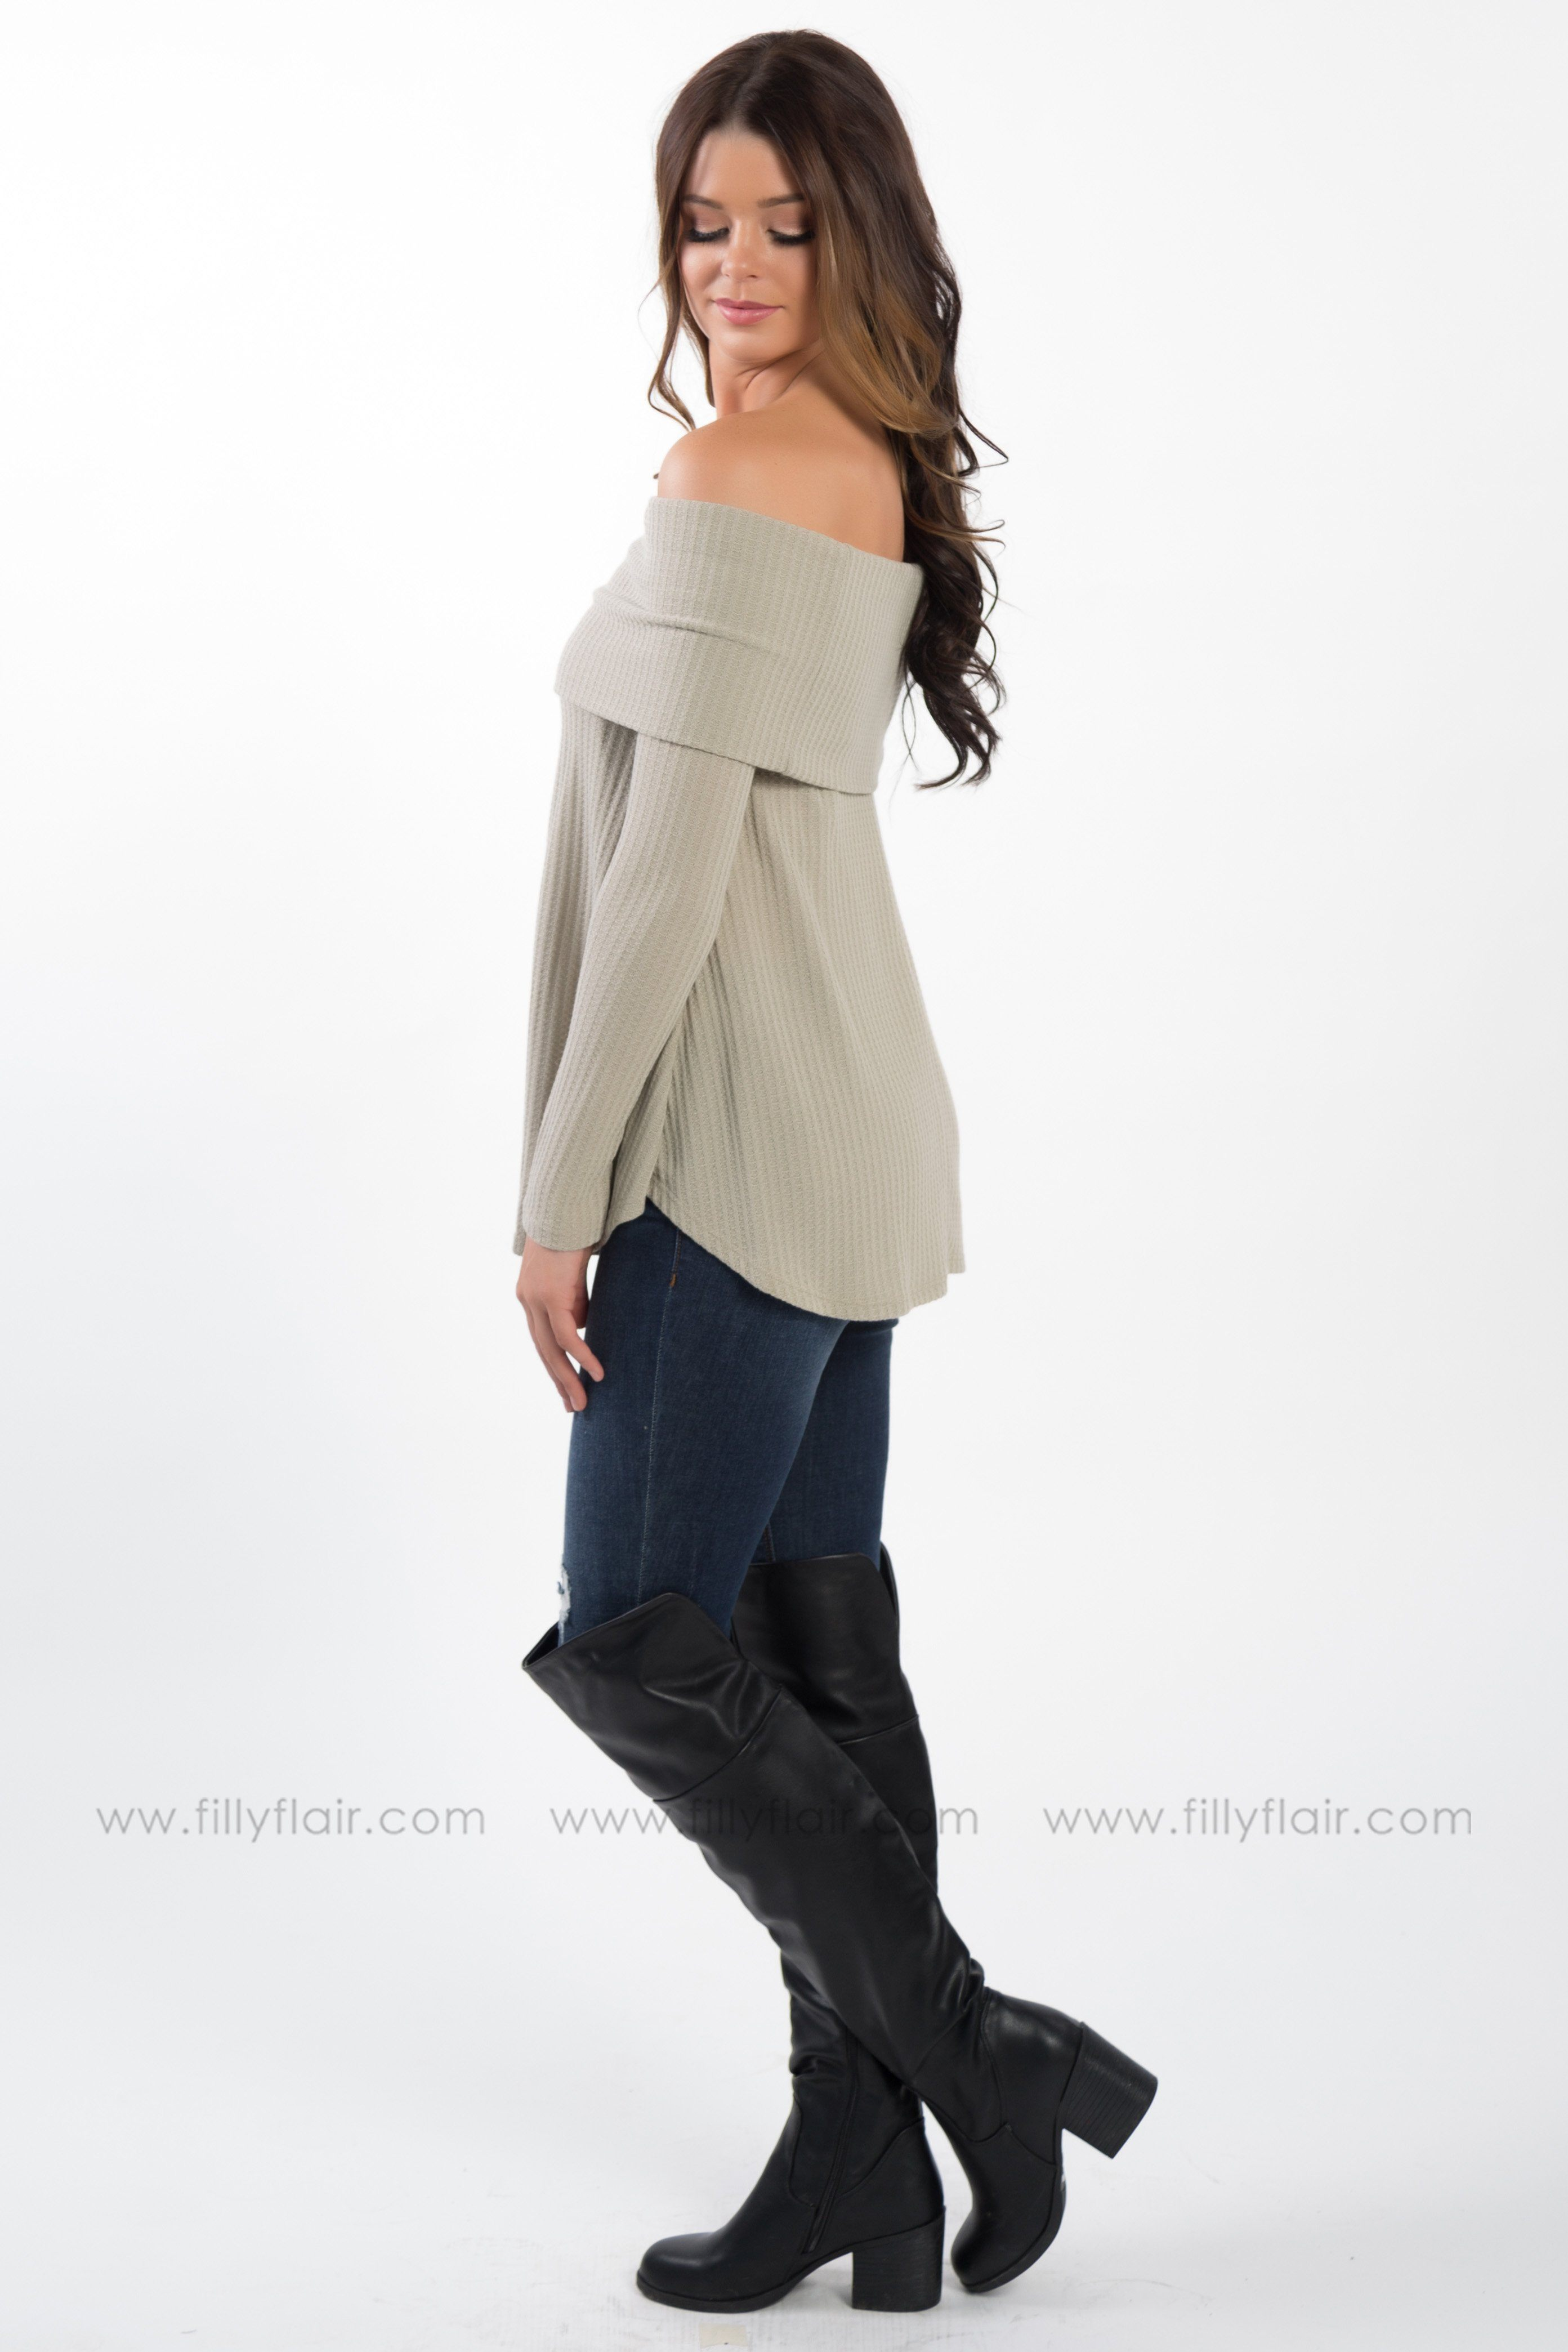 Say Hello Off The Shoulder Waffle Top in Oatmeal - Filly Flair